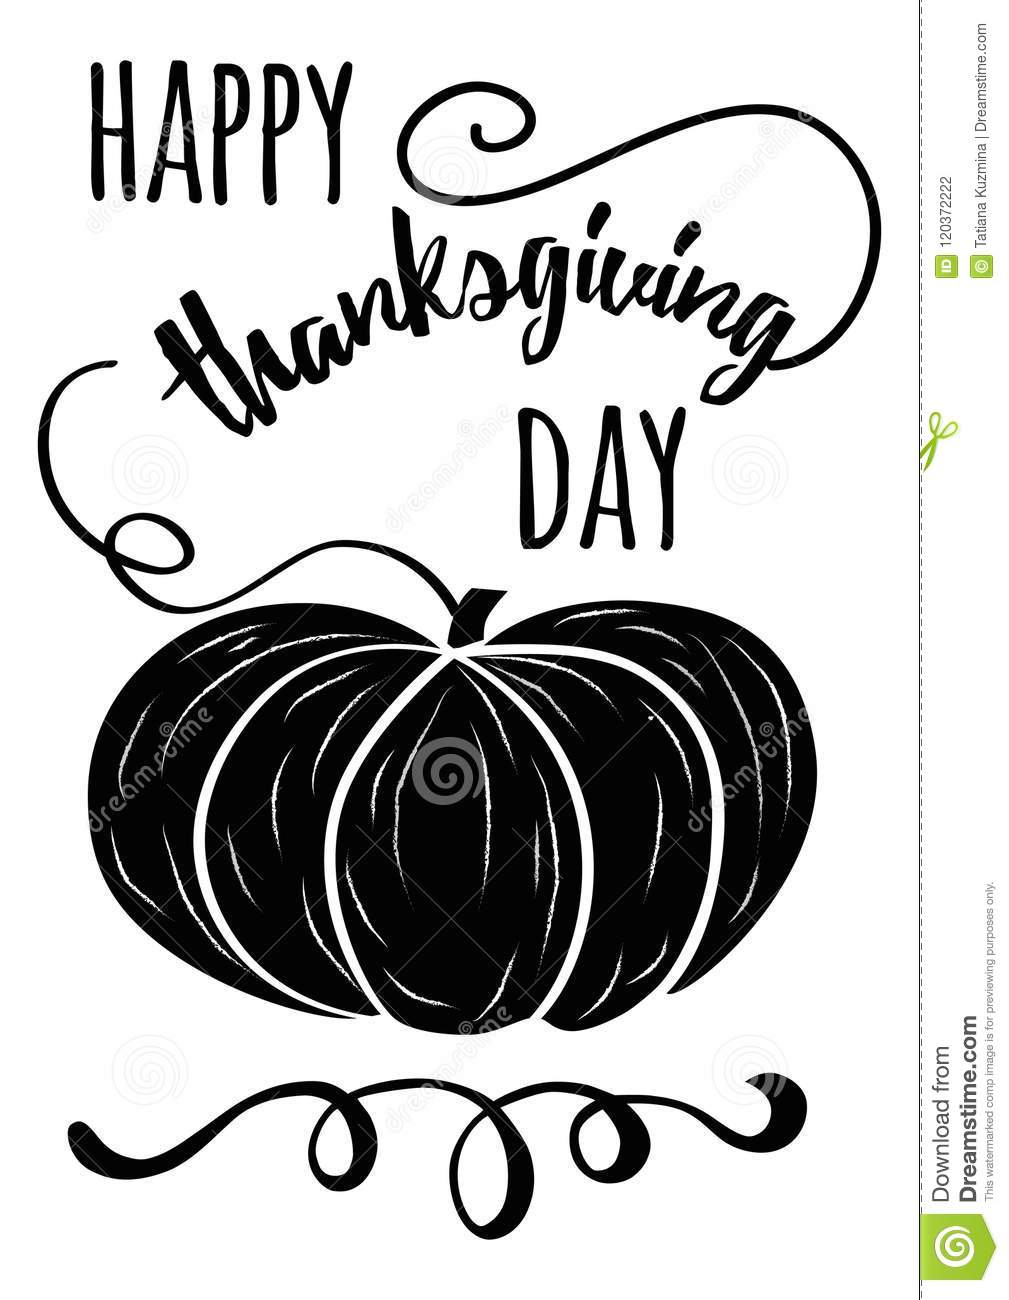 Vector Hand Drawn Black Pampkin And Thanksgiving Inspirational Quote On White Background Happy Thanksgiving Day